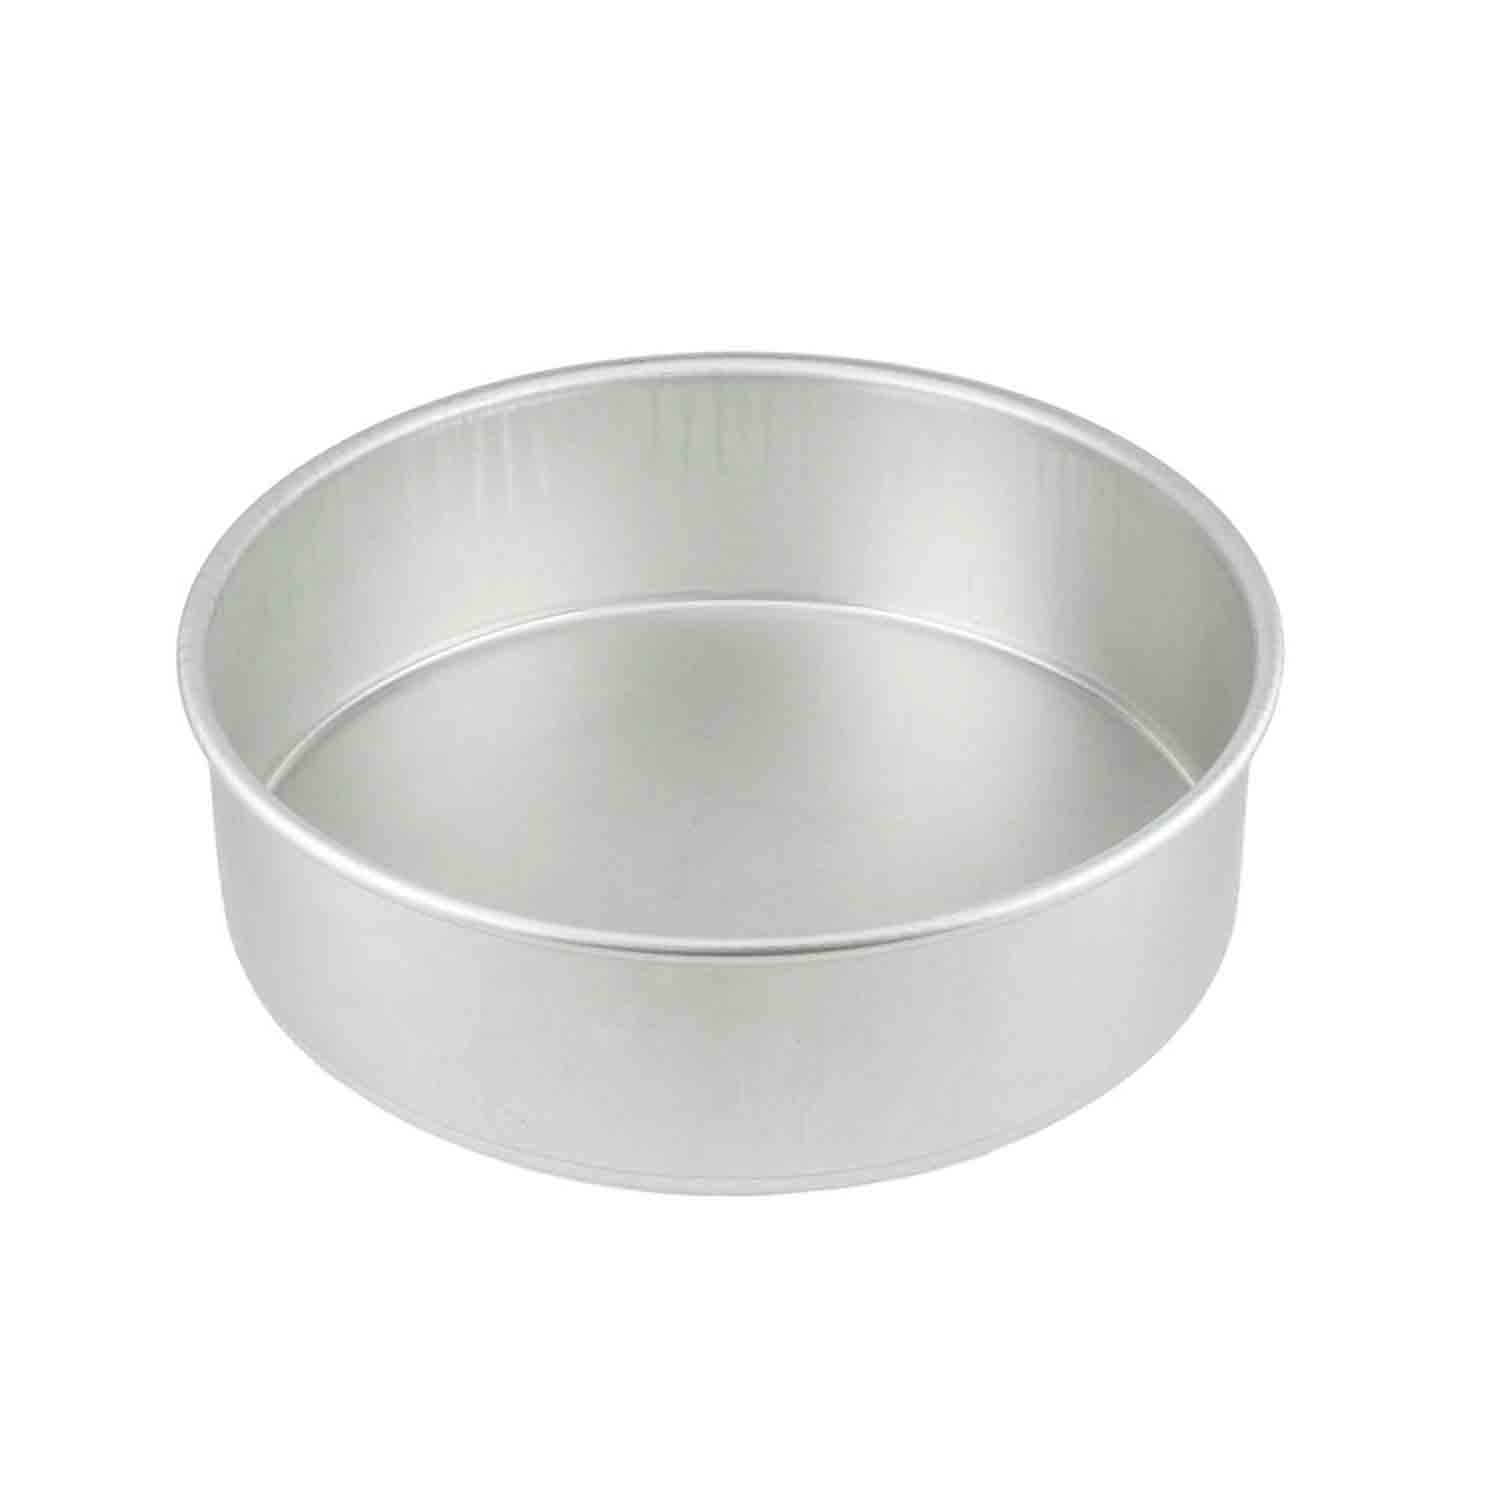 "10 x 3"" Magic Line Round Cake Pan"